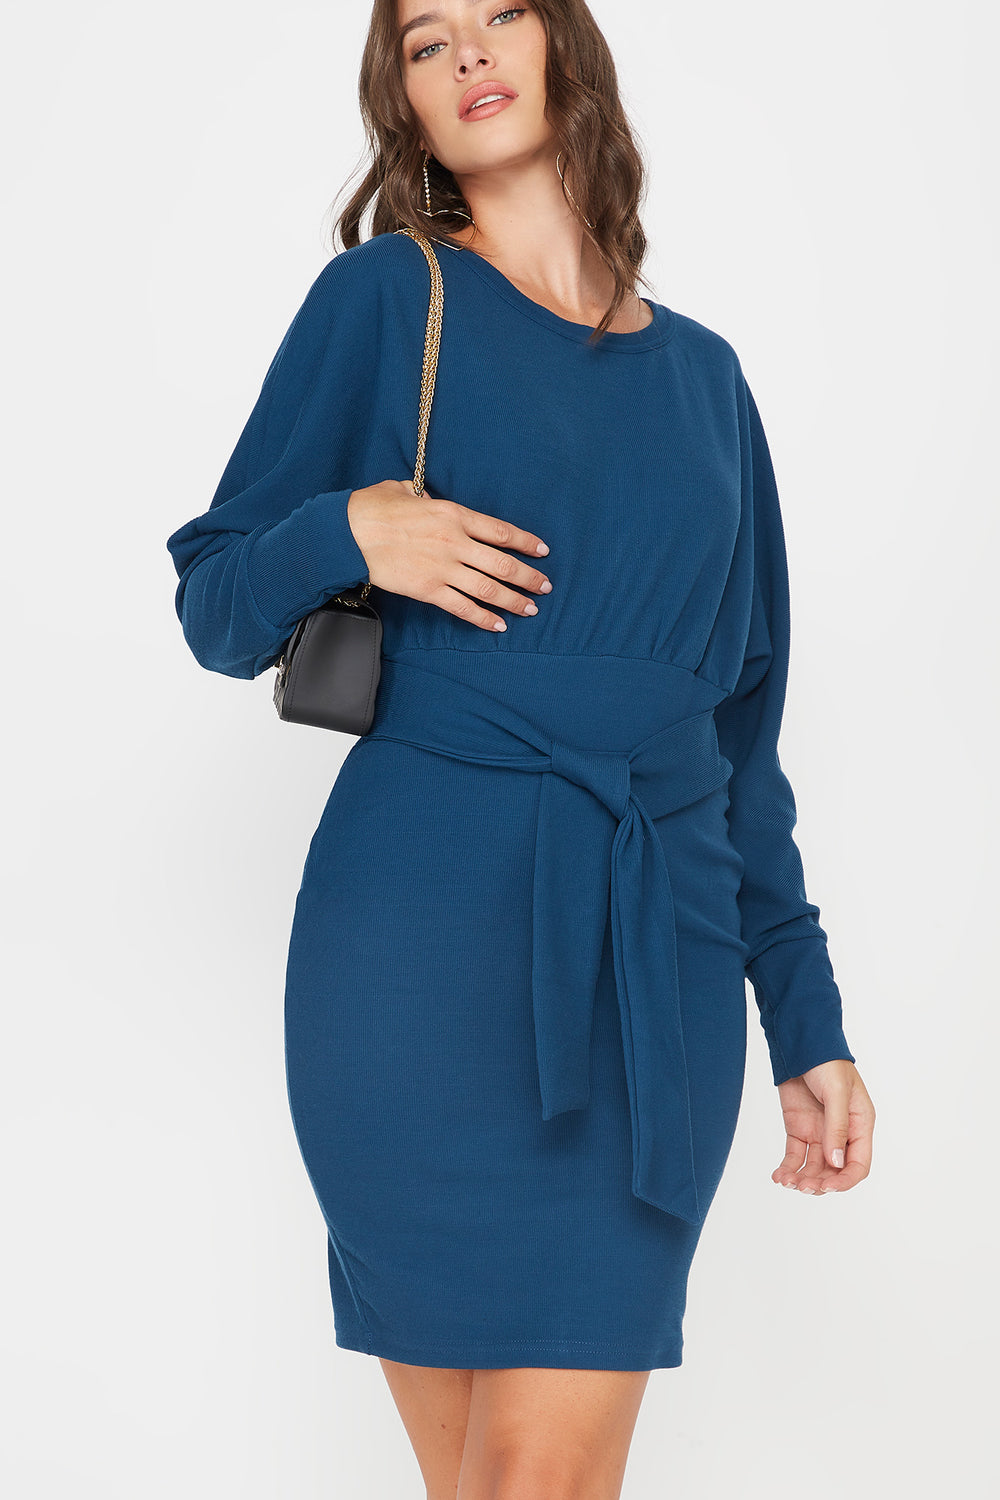 Scoop Neck Self Tie Dolman Long Sleeve Dress Teal